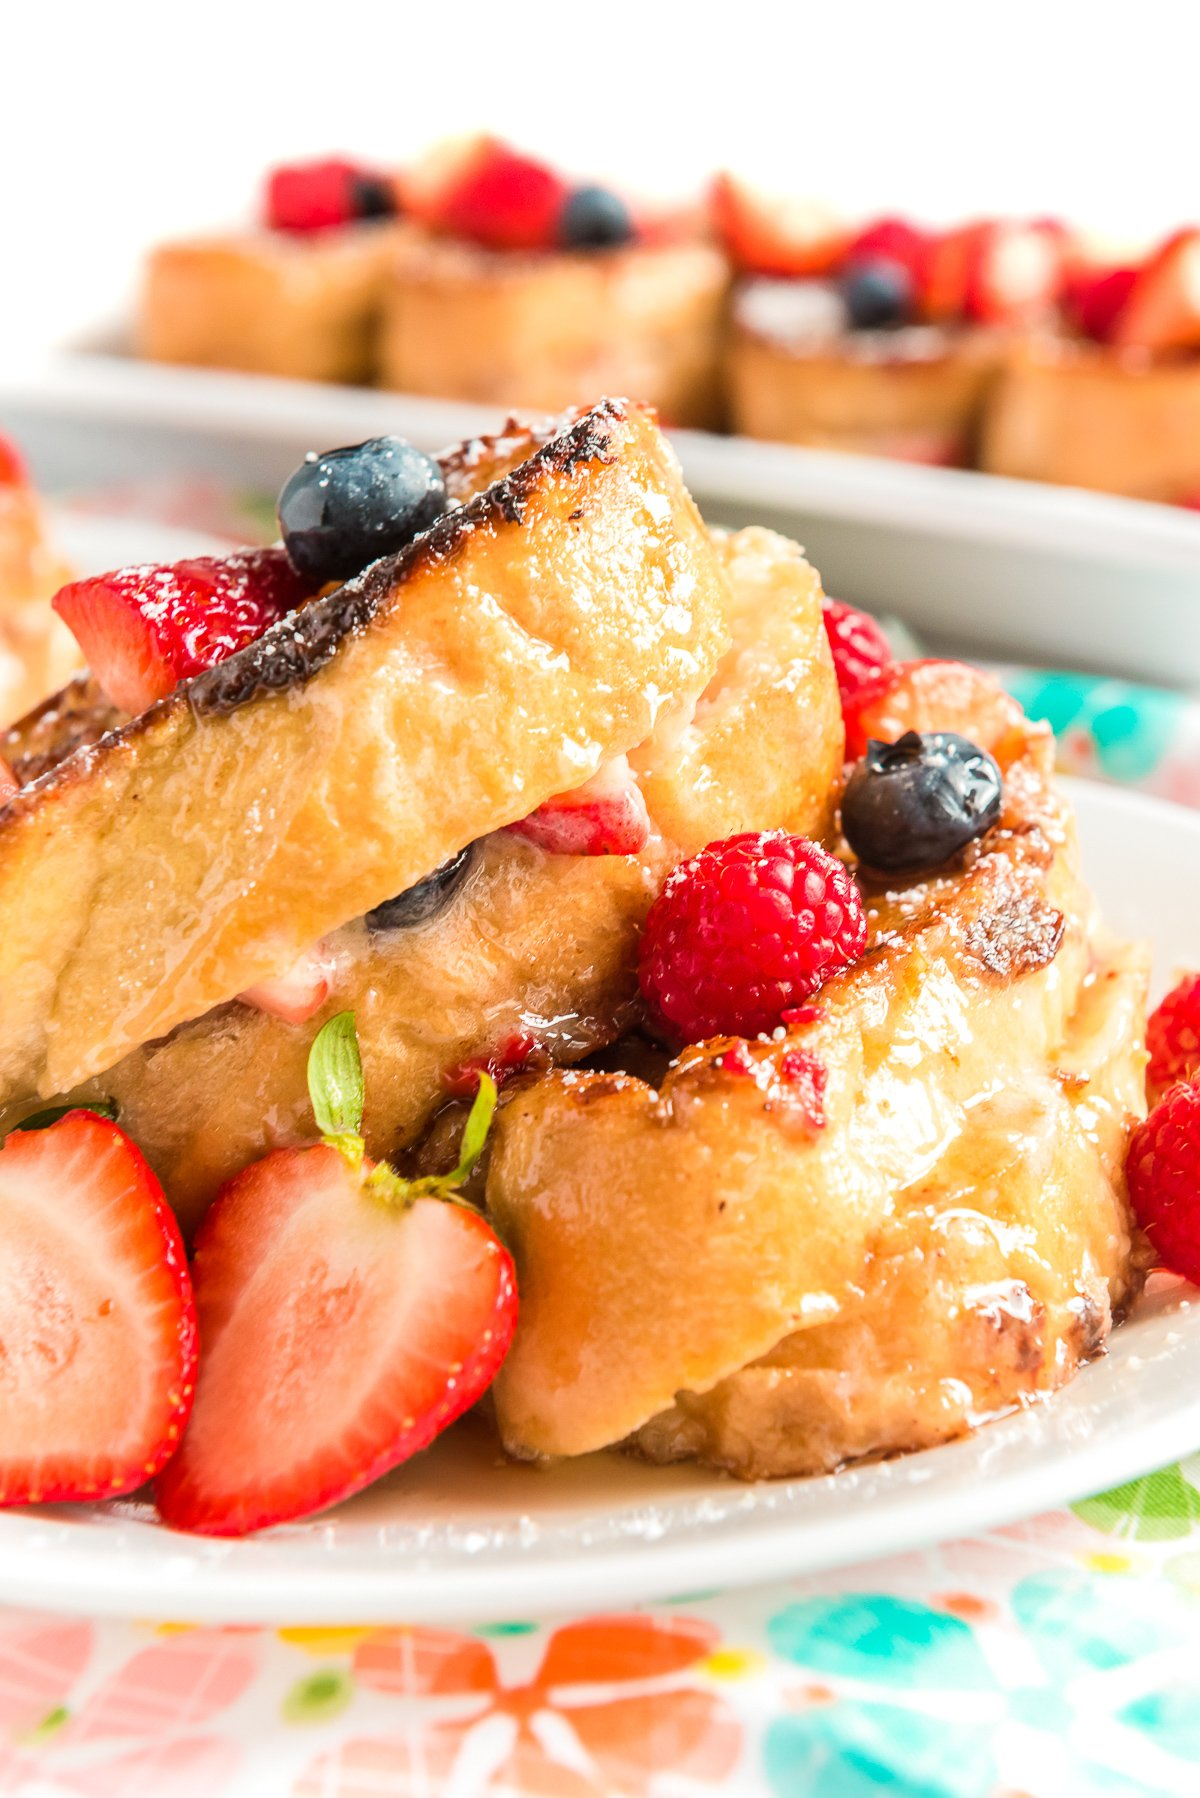 Berry French Toast on a white plate with more slices of french toast on a plate in the background.